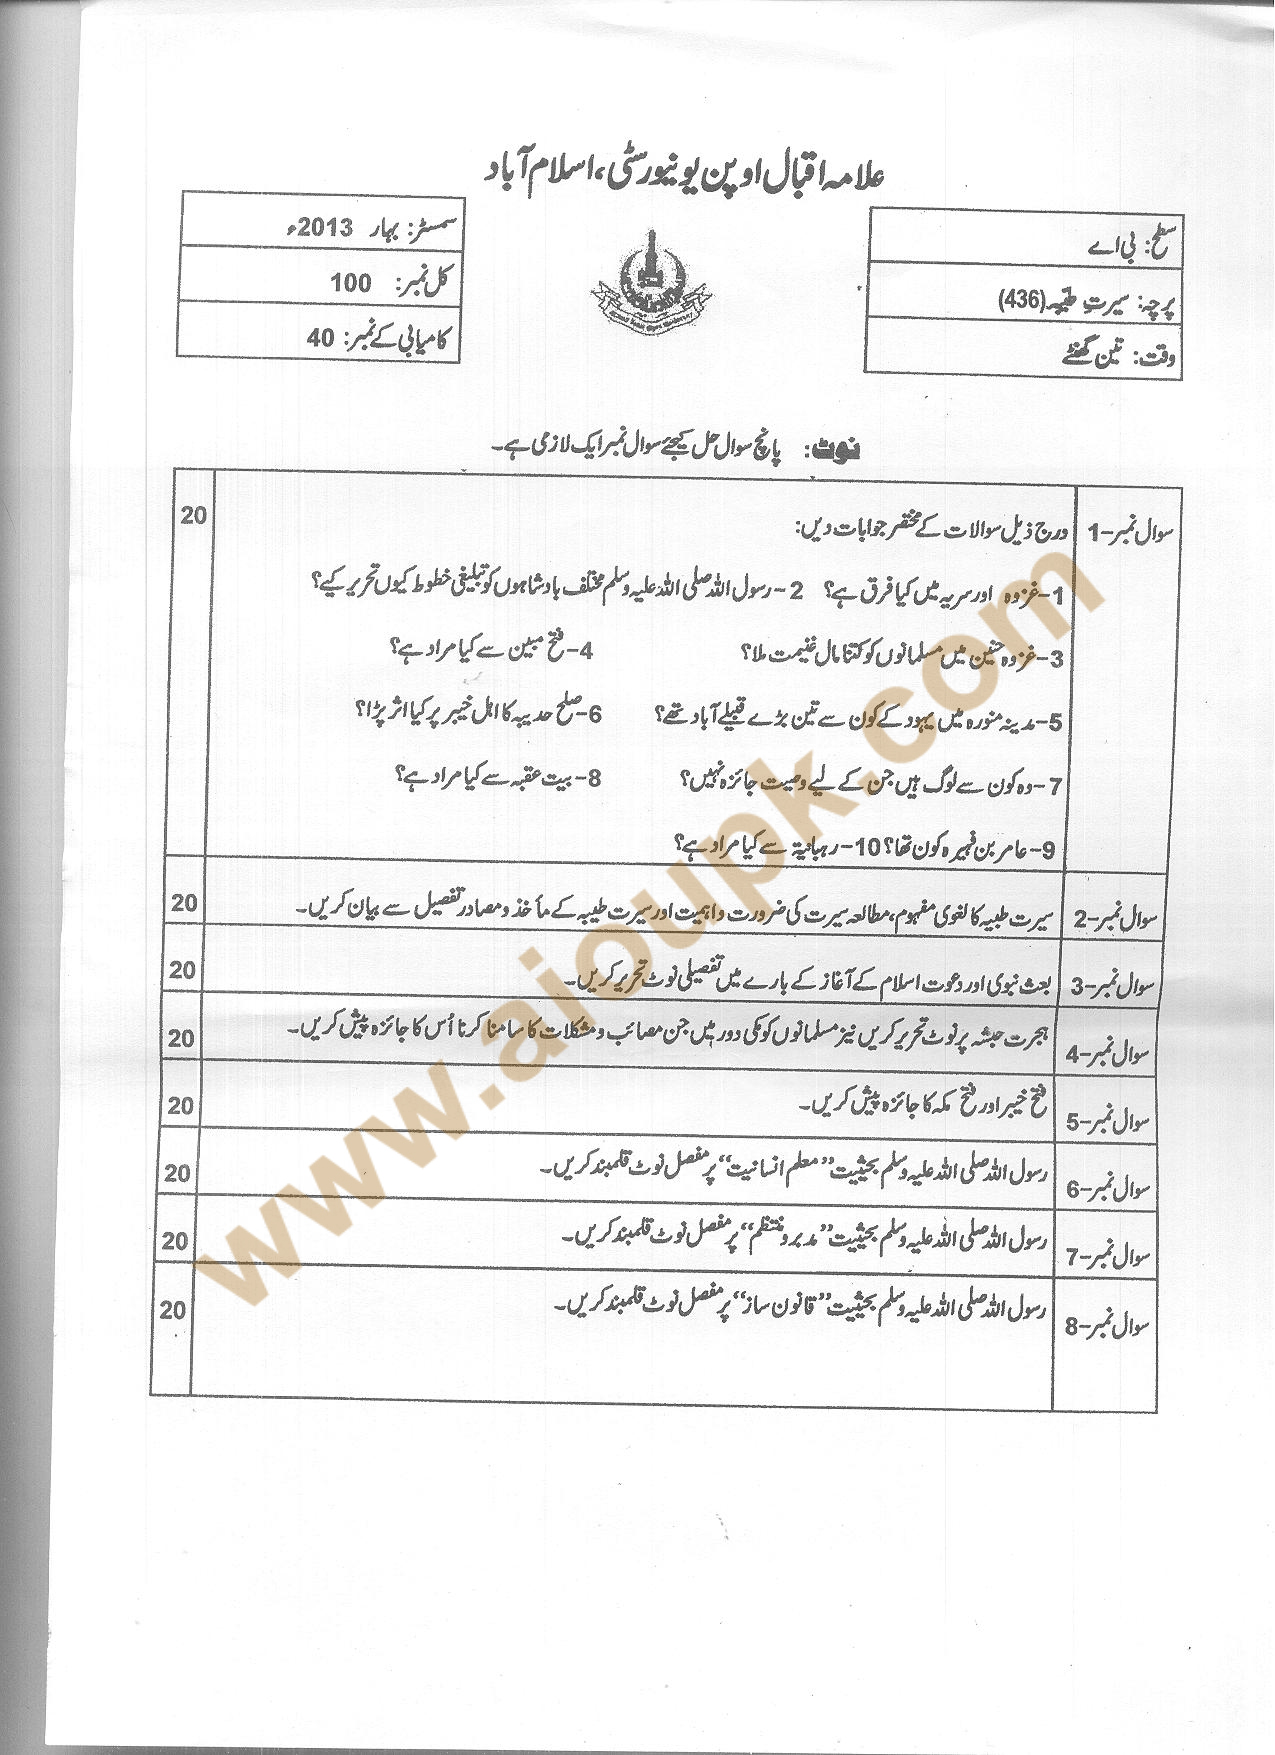 Seerat-e-Tayyaba Code 436 BA – AIOU Old Papers of Spring 2013